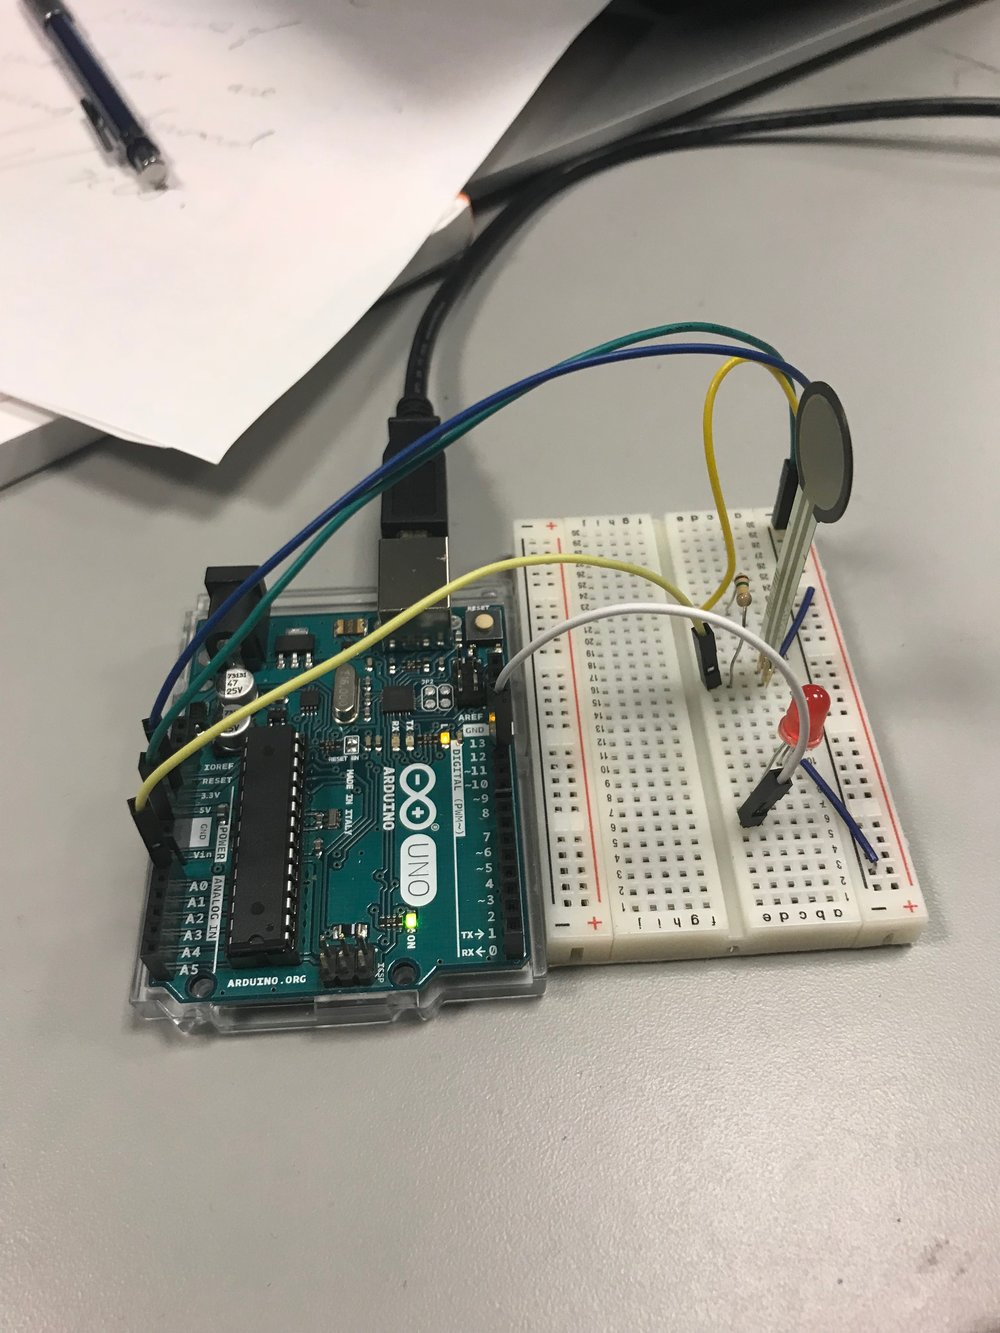 4 Pwm A Led Ideas For Stupid Pet Trick Project William Felinski Jpg Electrical And Electronic Engineering Topics Img 5909